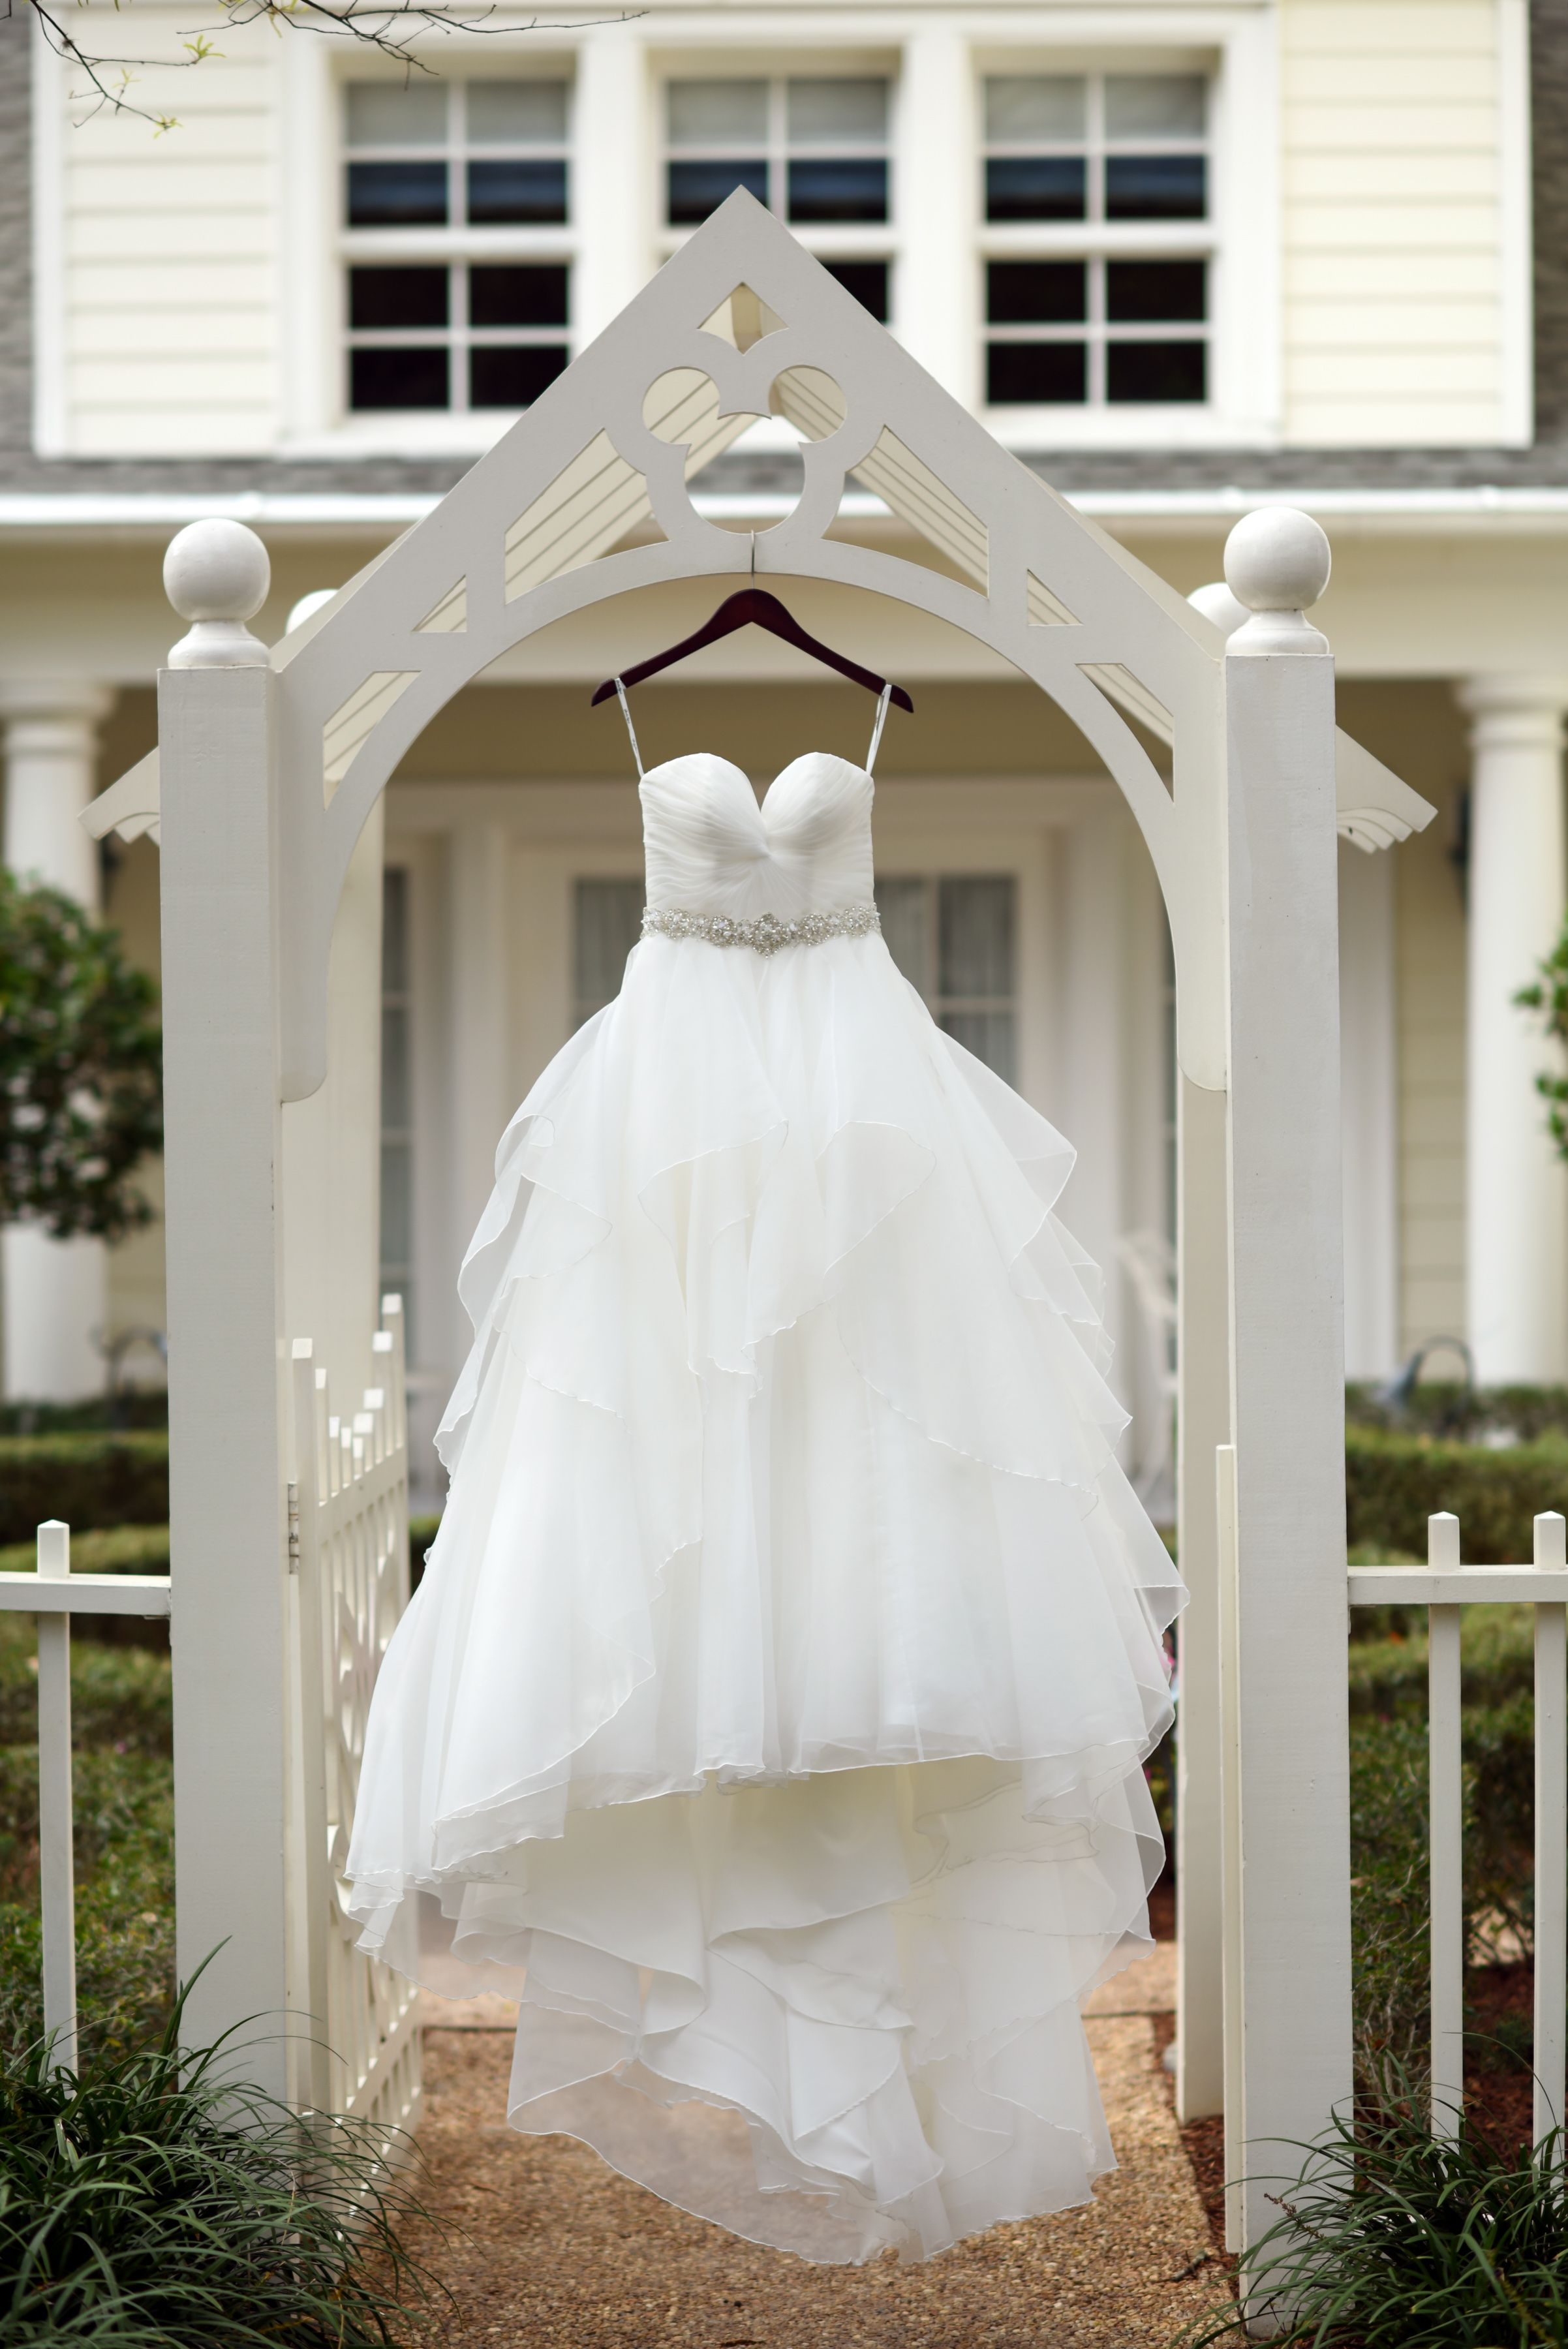 A Special Walt Disney World Bride Will Feel Like Princess Today With Her Beautiful Wedding Gown Photo Mike Fine Art Photography